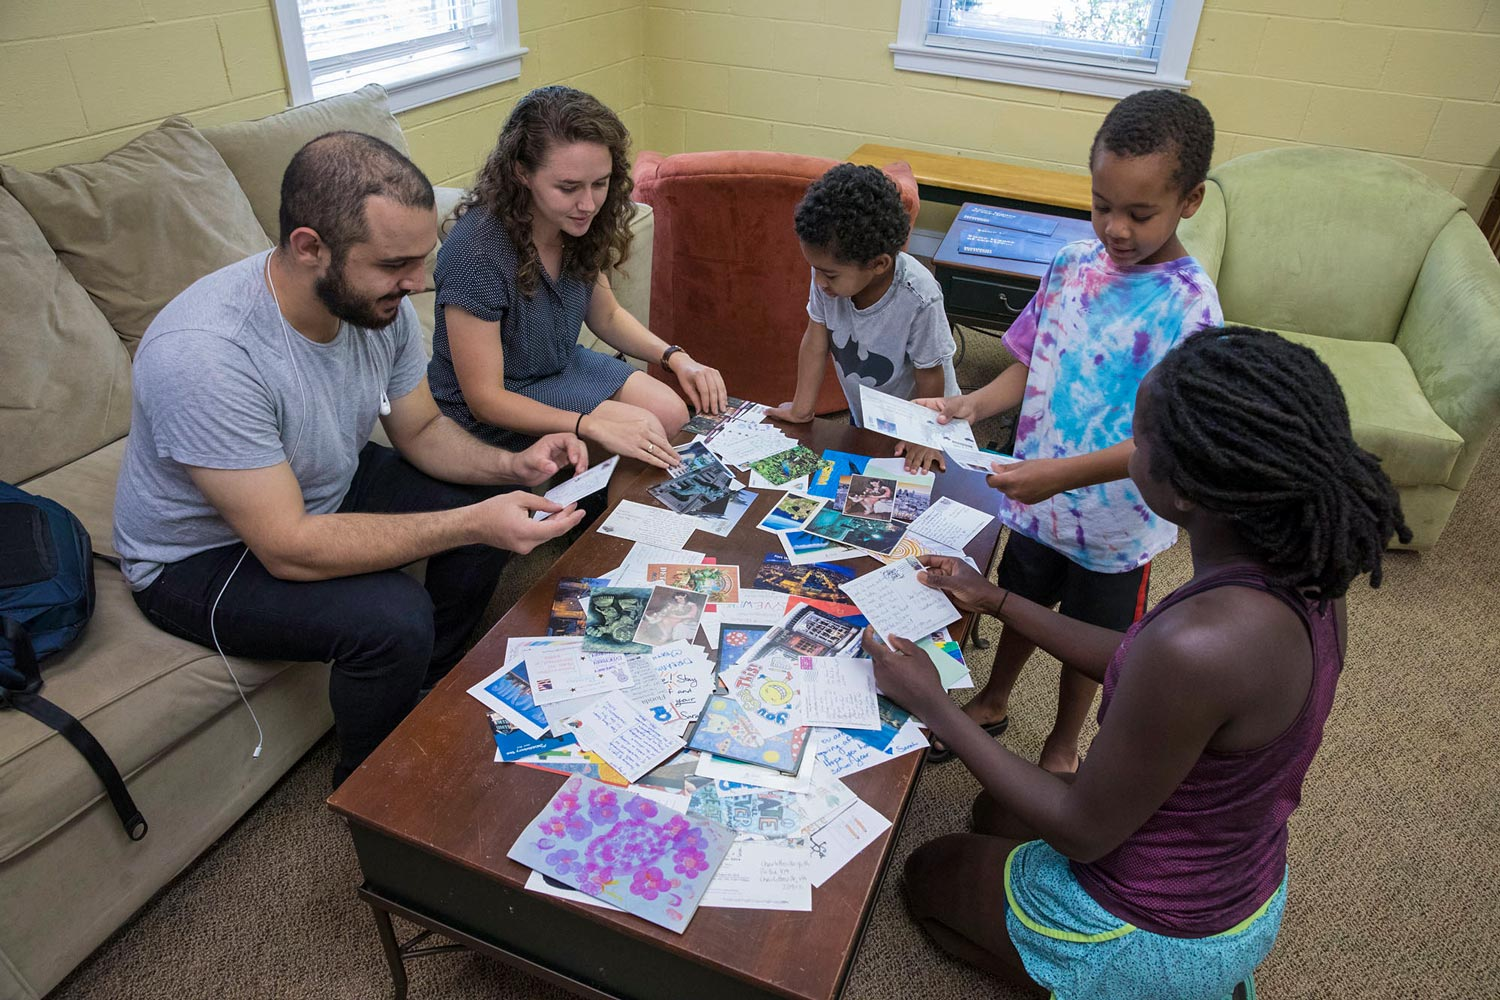 Madison House student board members Nojan Rostami and Margaret Haltom, seated on couch, show postcards to Abigail Kayser, a doctoral student in the Curry School of Education, and her two sons, Miles and Grant.